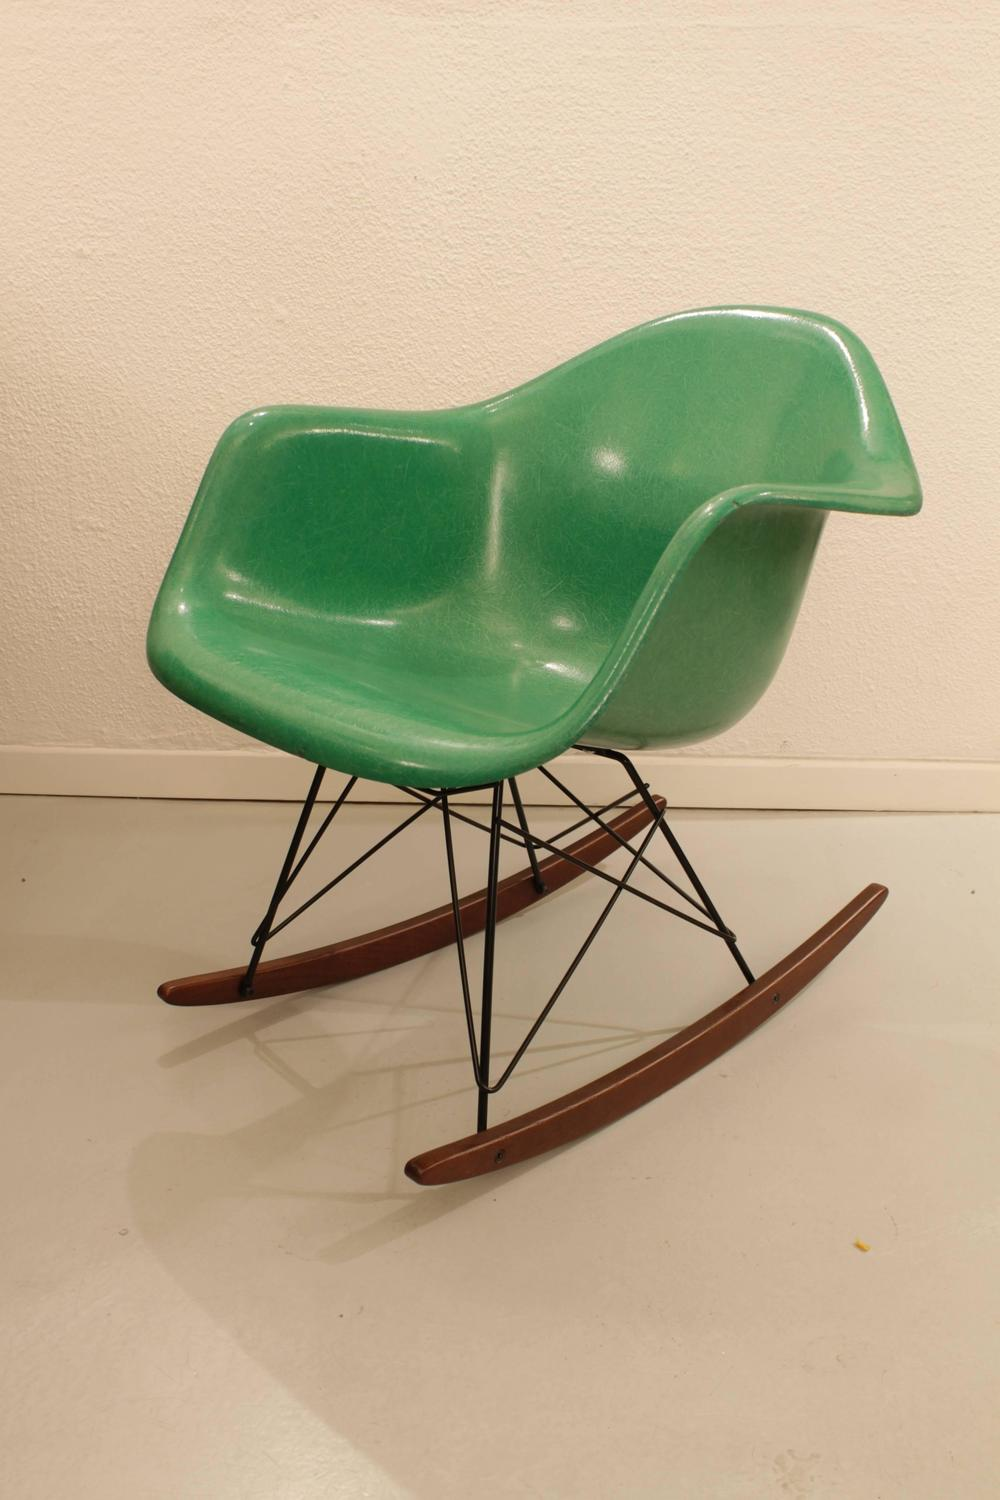 charles eames rocking chair apple green for sale at 1stdibs